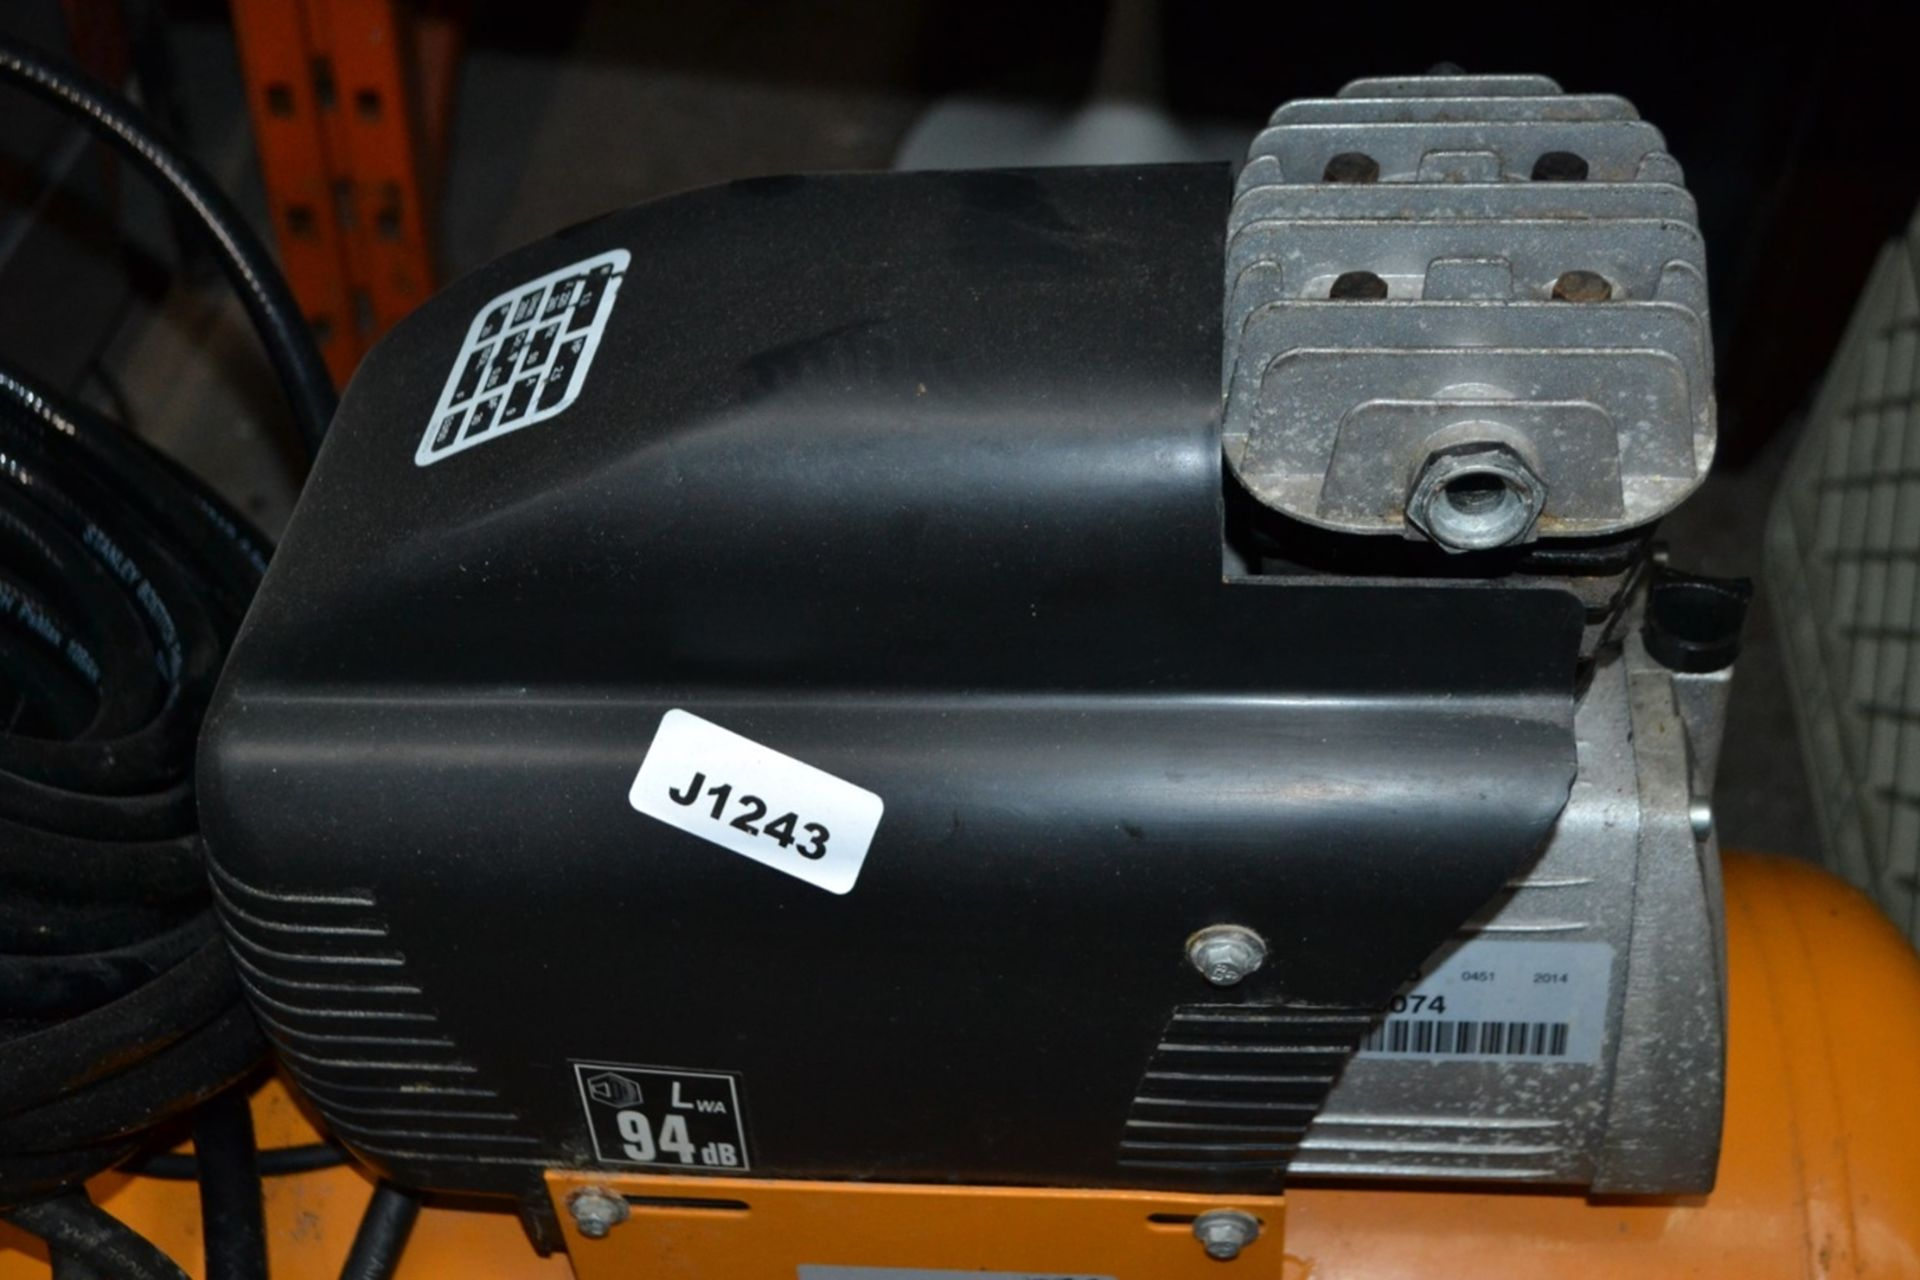 Lot 3072 - 1 x Bostitch C50-U Compressor - Ref: J1243 - CL011 - Location: Altrincham WA14